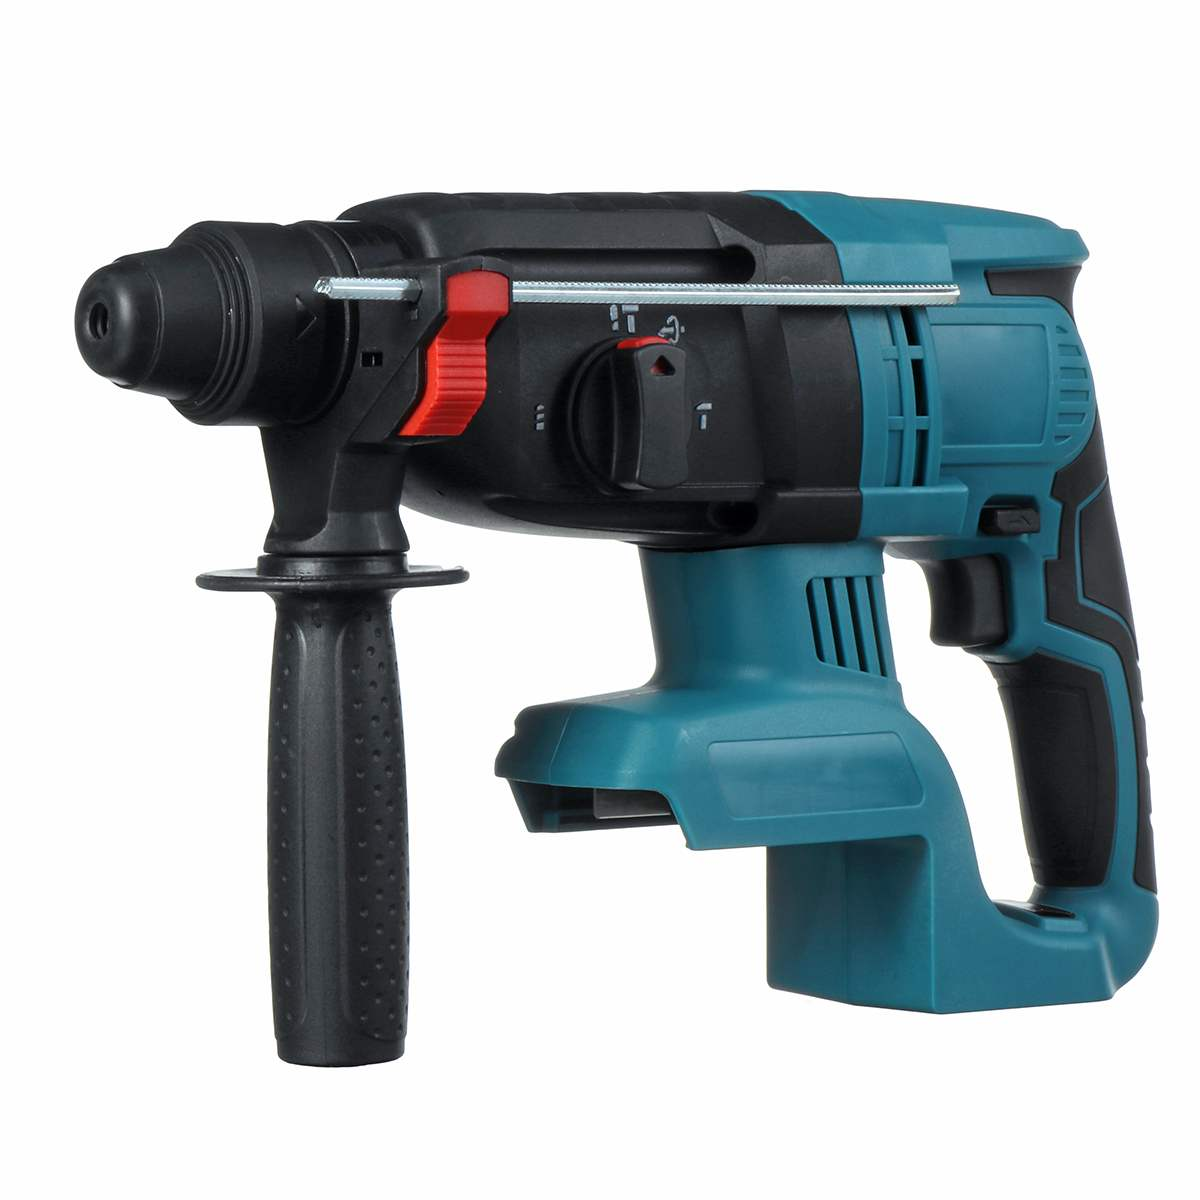 18V 4 Functions Electric Brushless Cordless Rotary Hammer Drill Rechargeable Hammer 27mm Impact Drilll For 18V Makita Battery